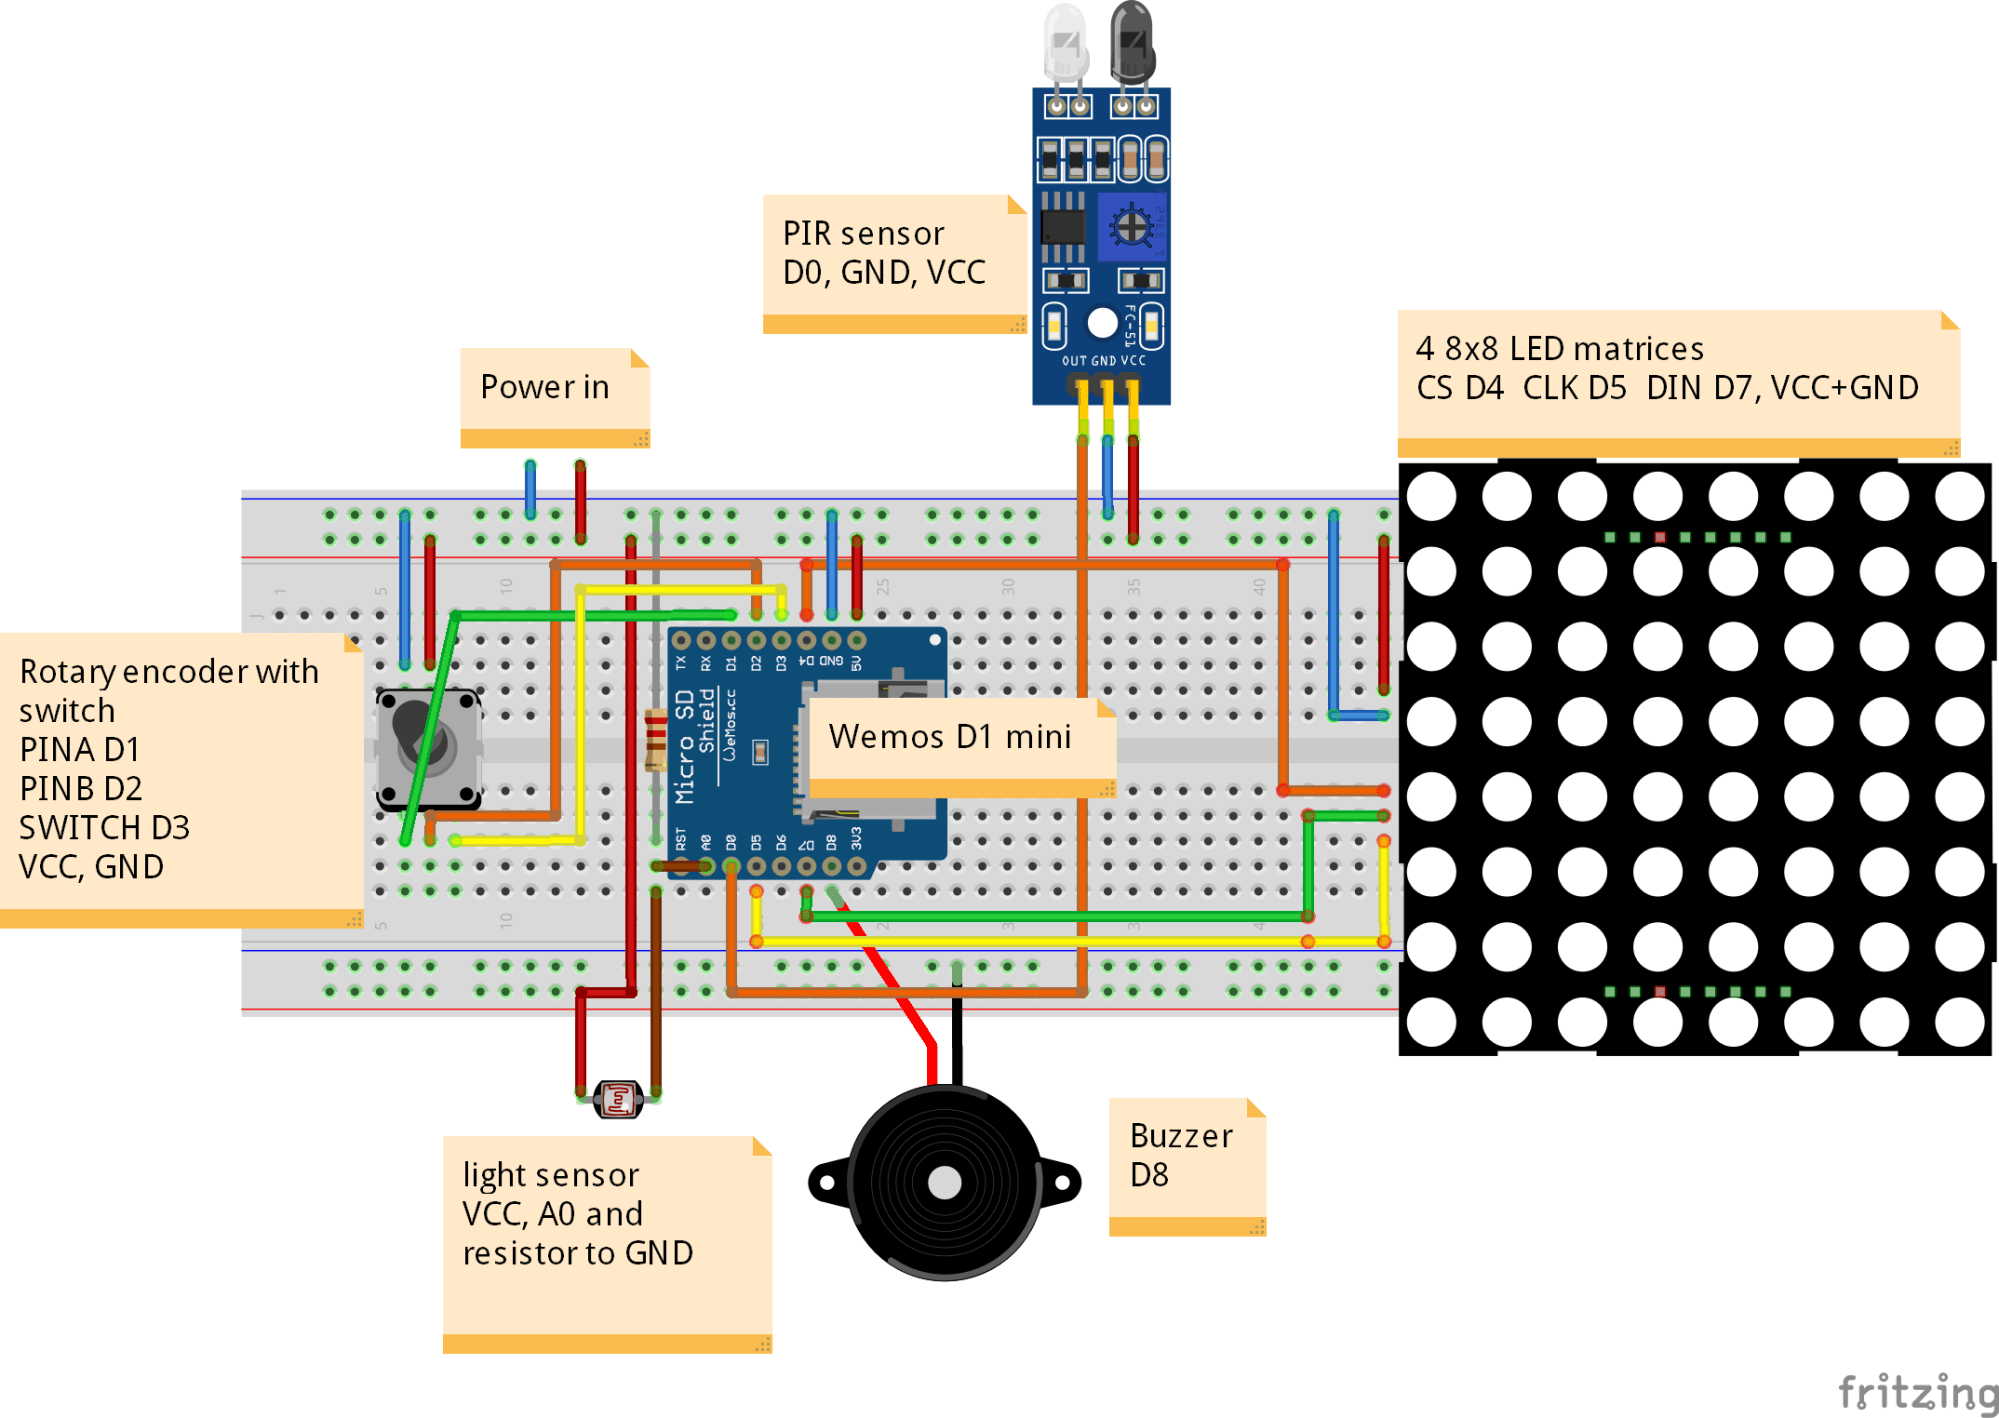 hight resolution of social alarm clock circuit 1 wiring diagram source filecable switched video network diagrampng wikimedia commons